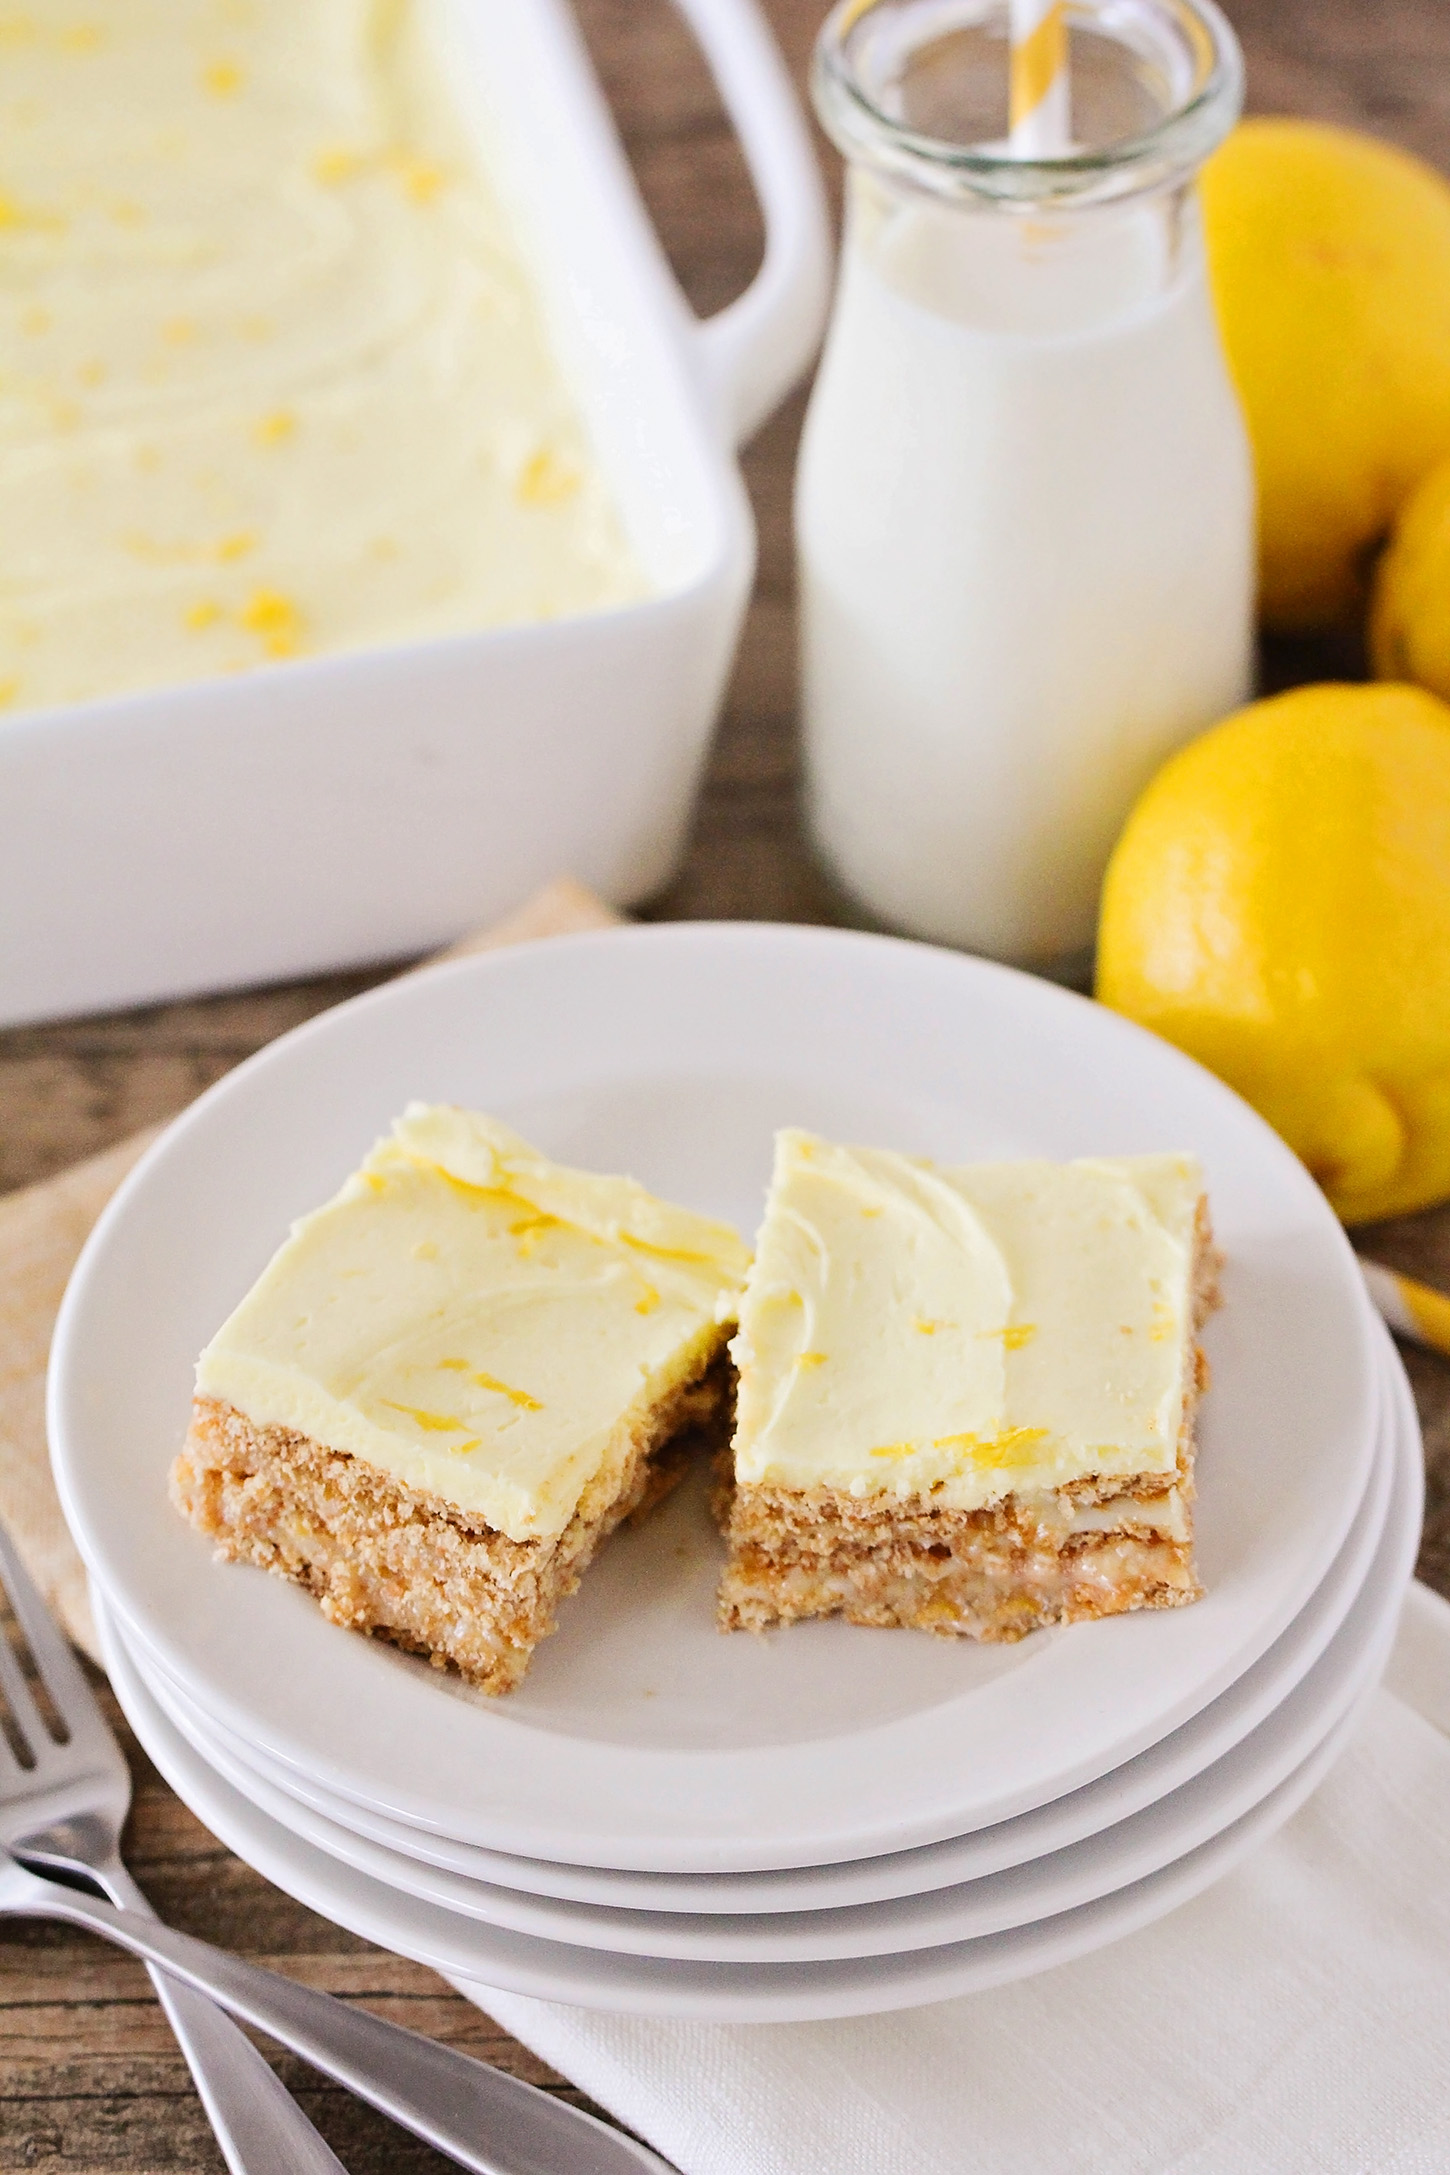 These delicious no-bake lemon squares taste like summer. They're the perfect combination of sweet and tart and don't require firing up the oven to make them!